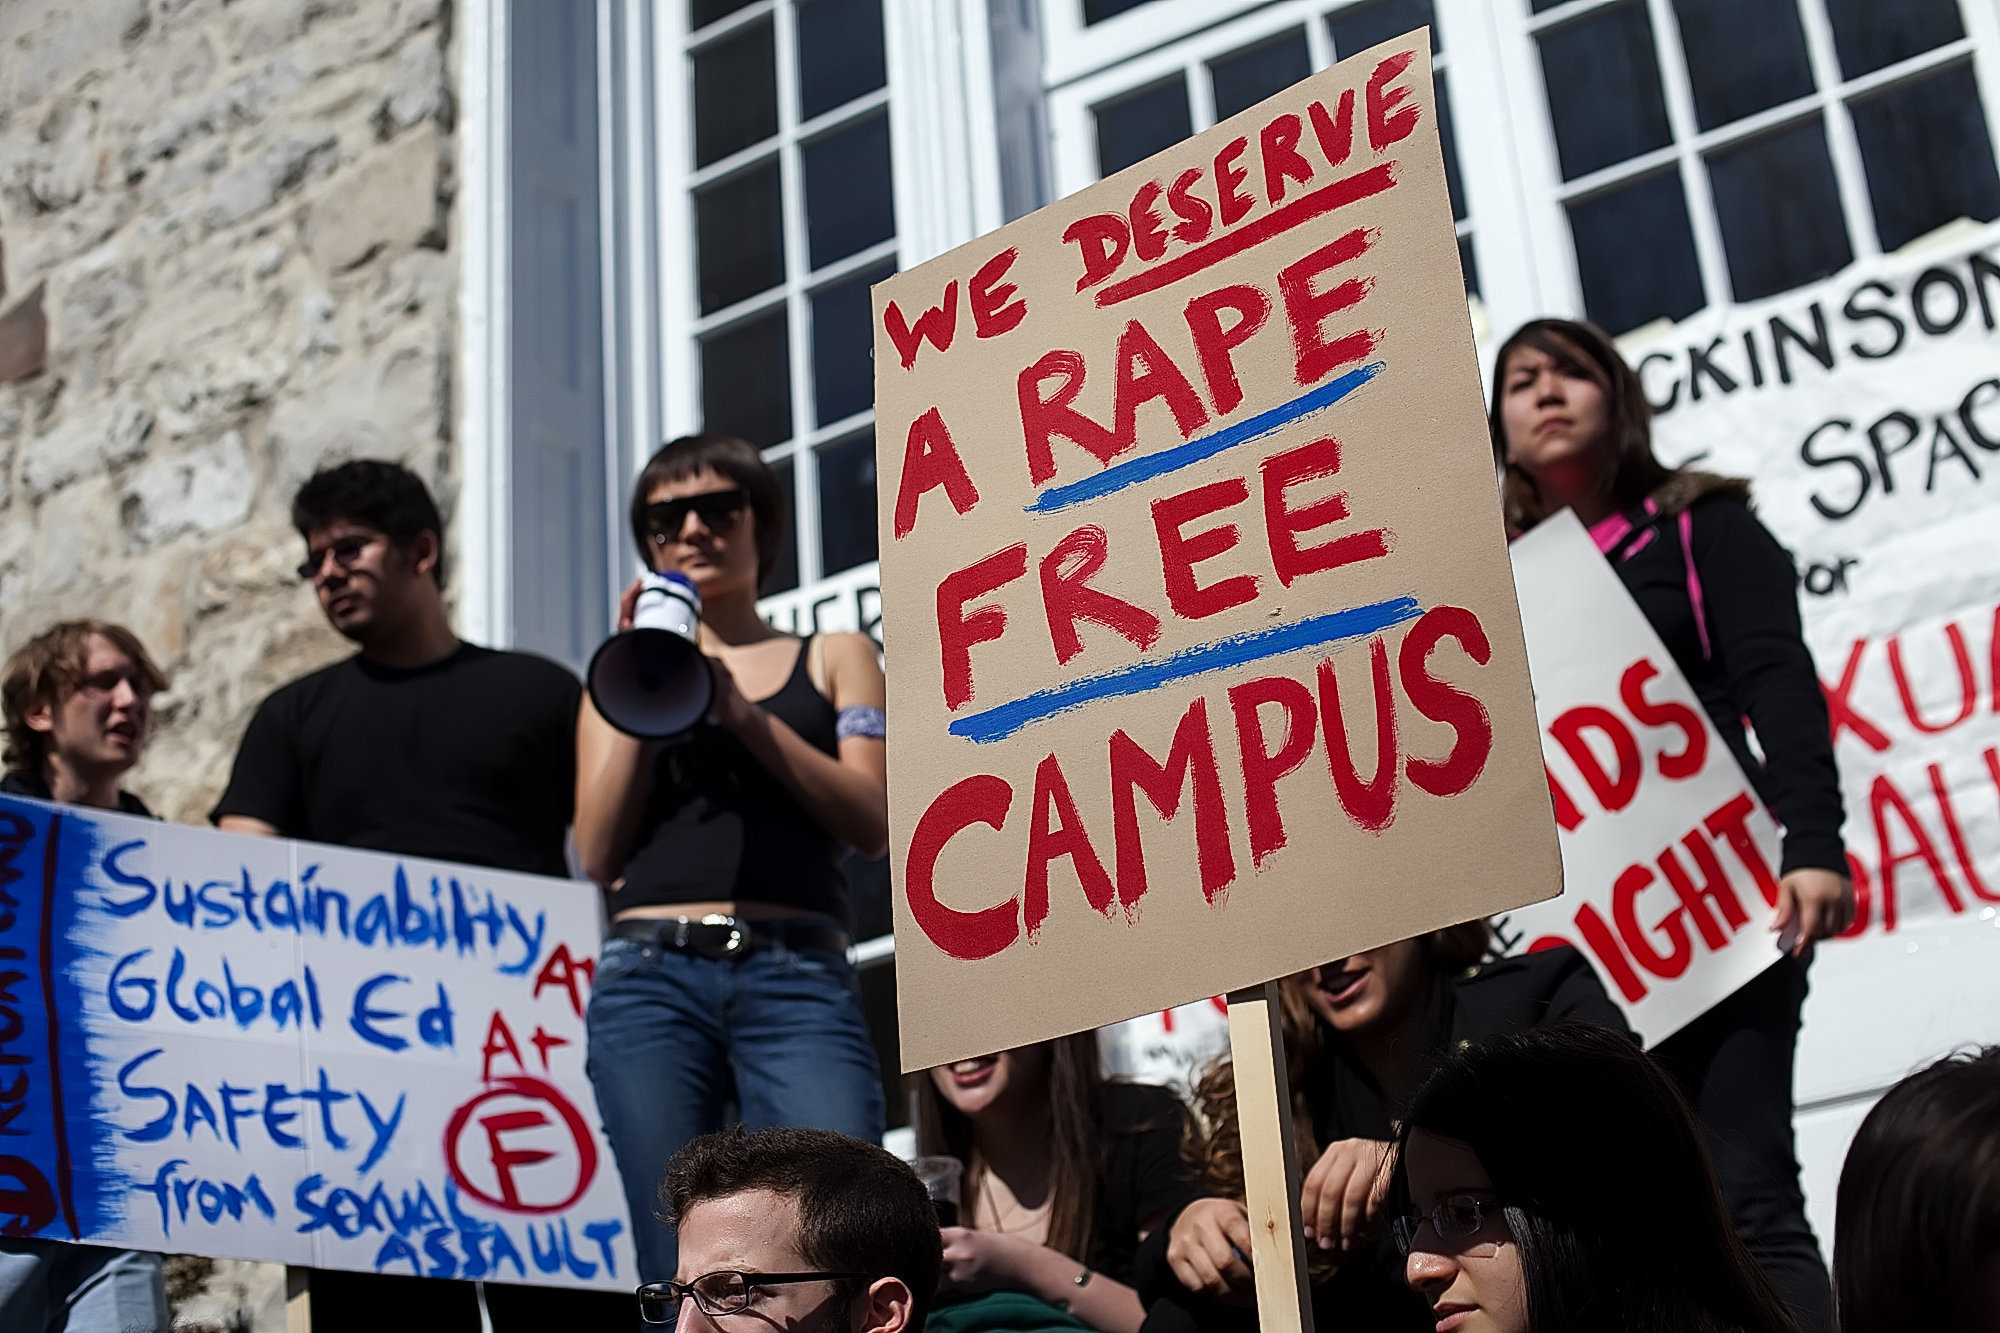 Image credit: http://nyulocal.com/on-campus/2014/05/06/federal-investigations-bring-attention-to-campus-sexual-assault-problem/